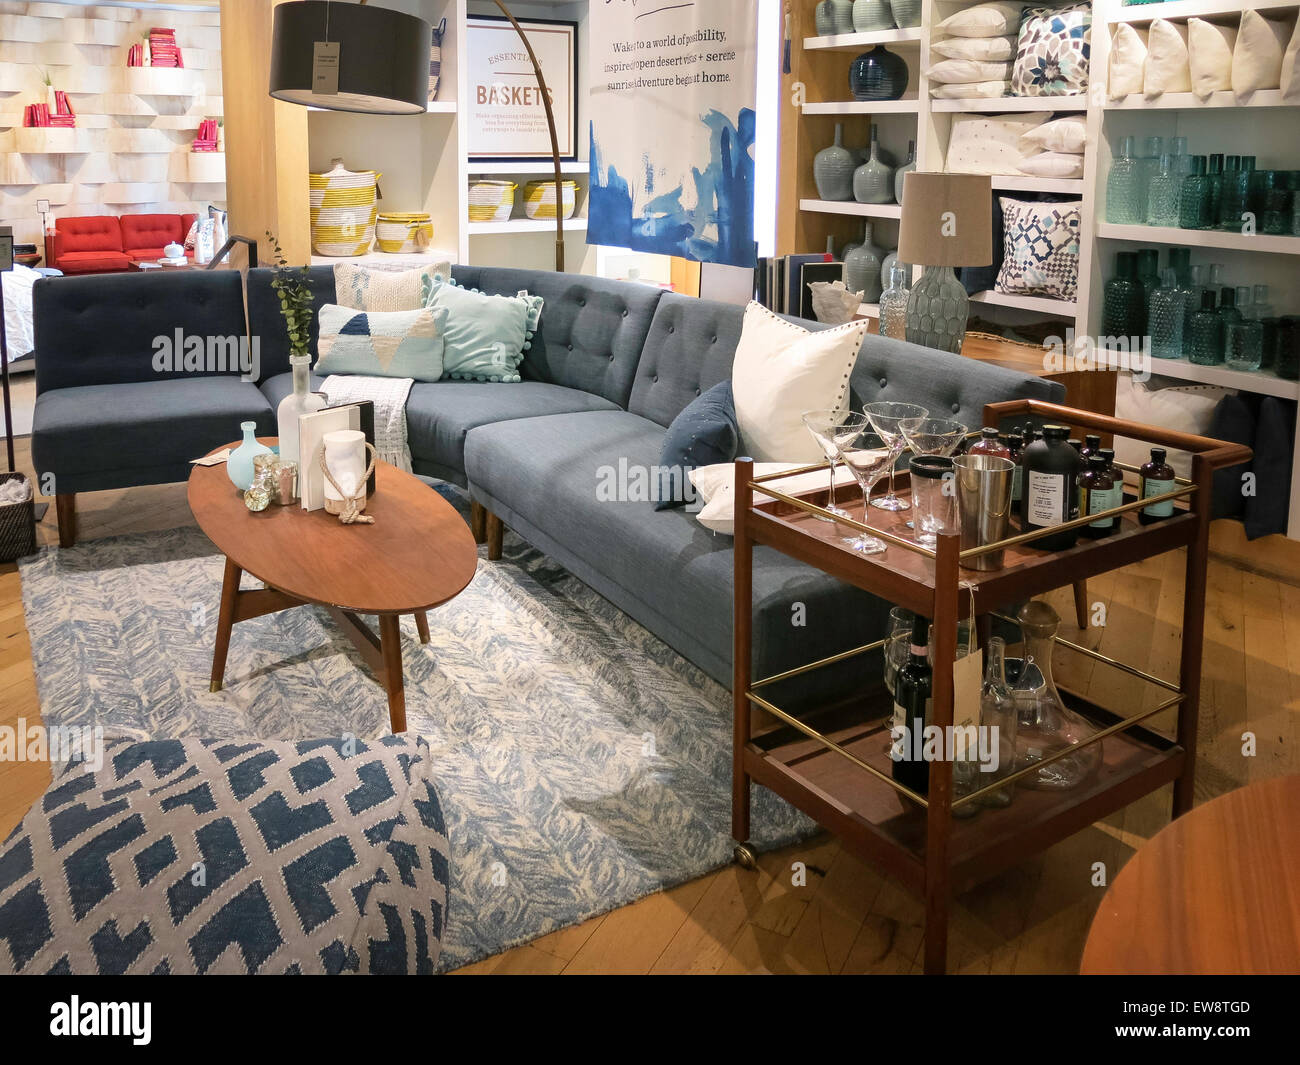 Stock Photo   West Elm Home Furnishings Store  NYC  USA. West Elm Home Furnishings Store  NYC  USA Stock Photo  Royalty